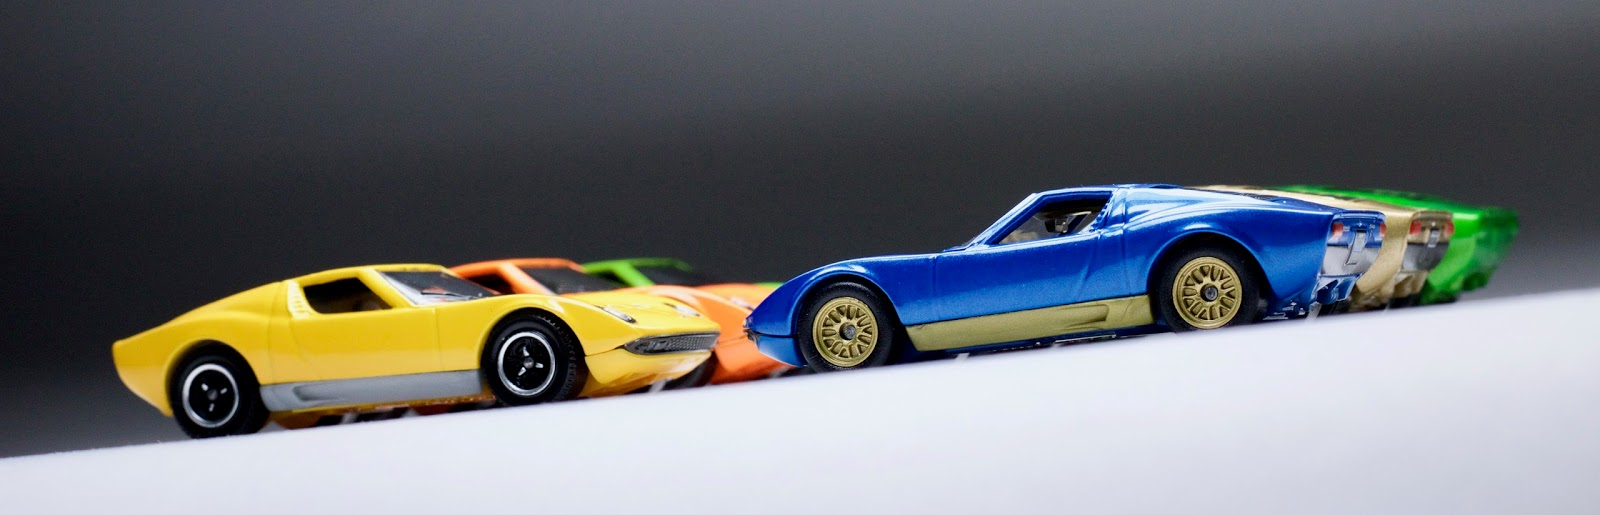 A Complete Look At The Matchbox Lamborghini Miura With Its Designer